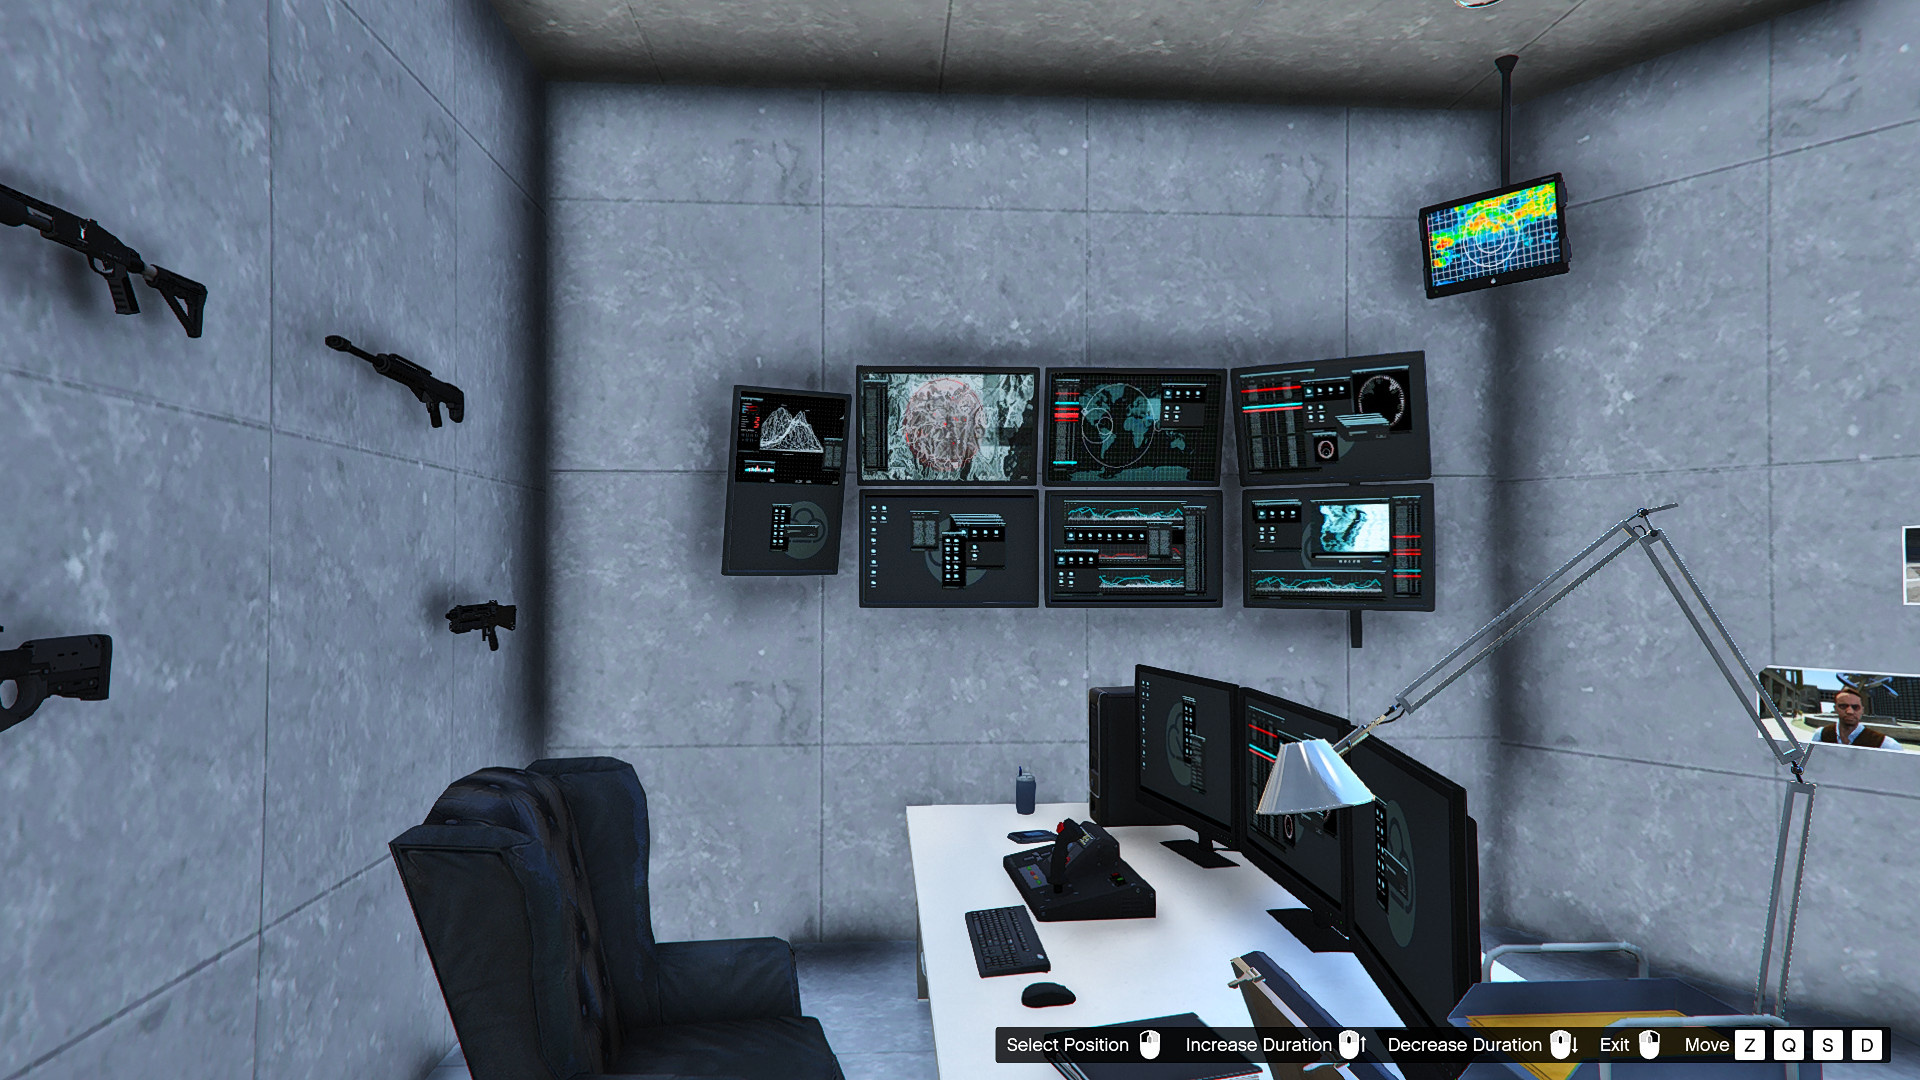 007 Secret Agent Headquarter Add On Ymap Gta5 Mods Com